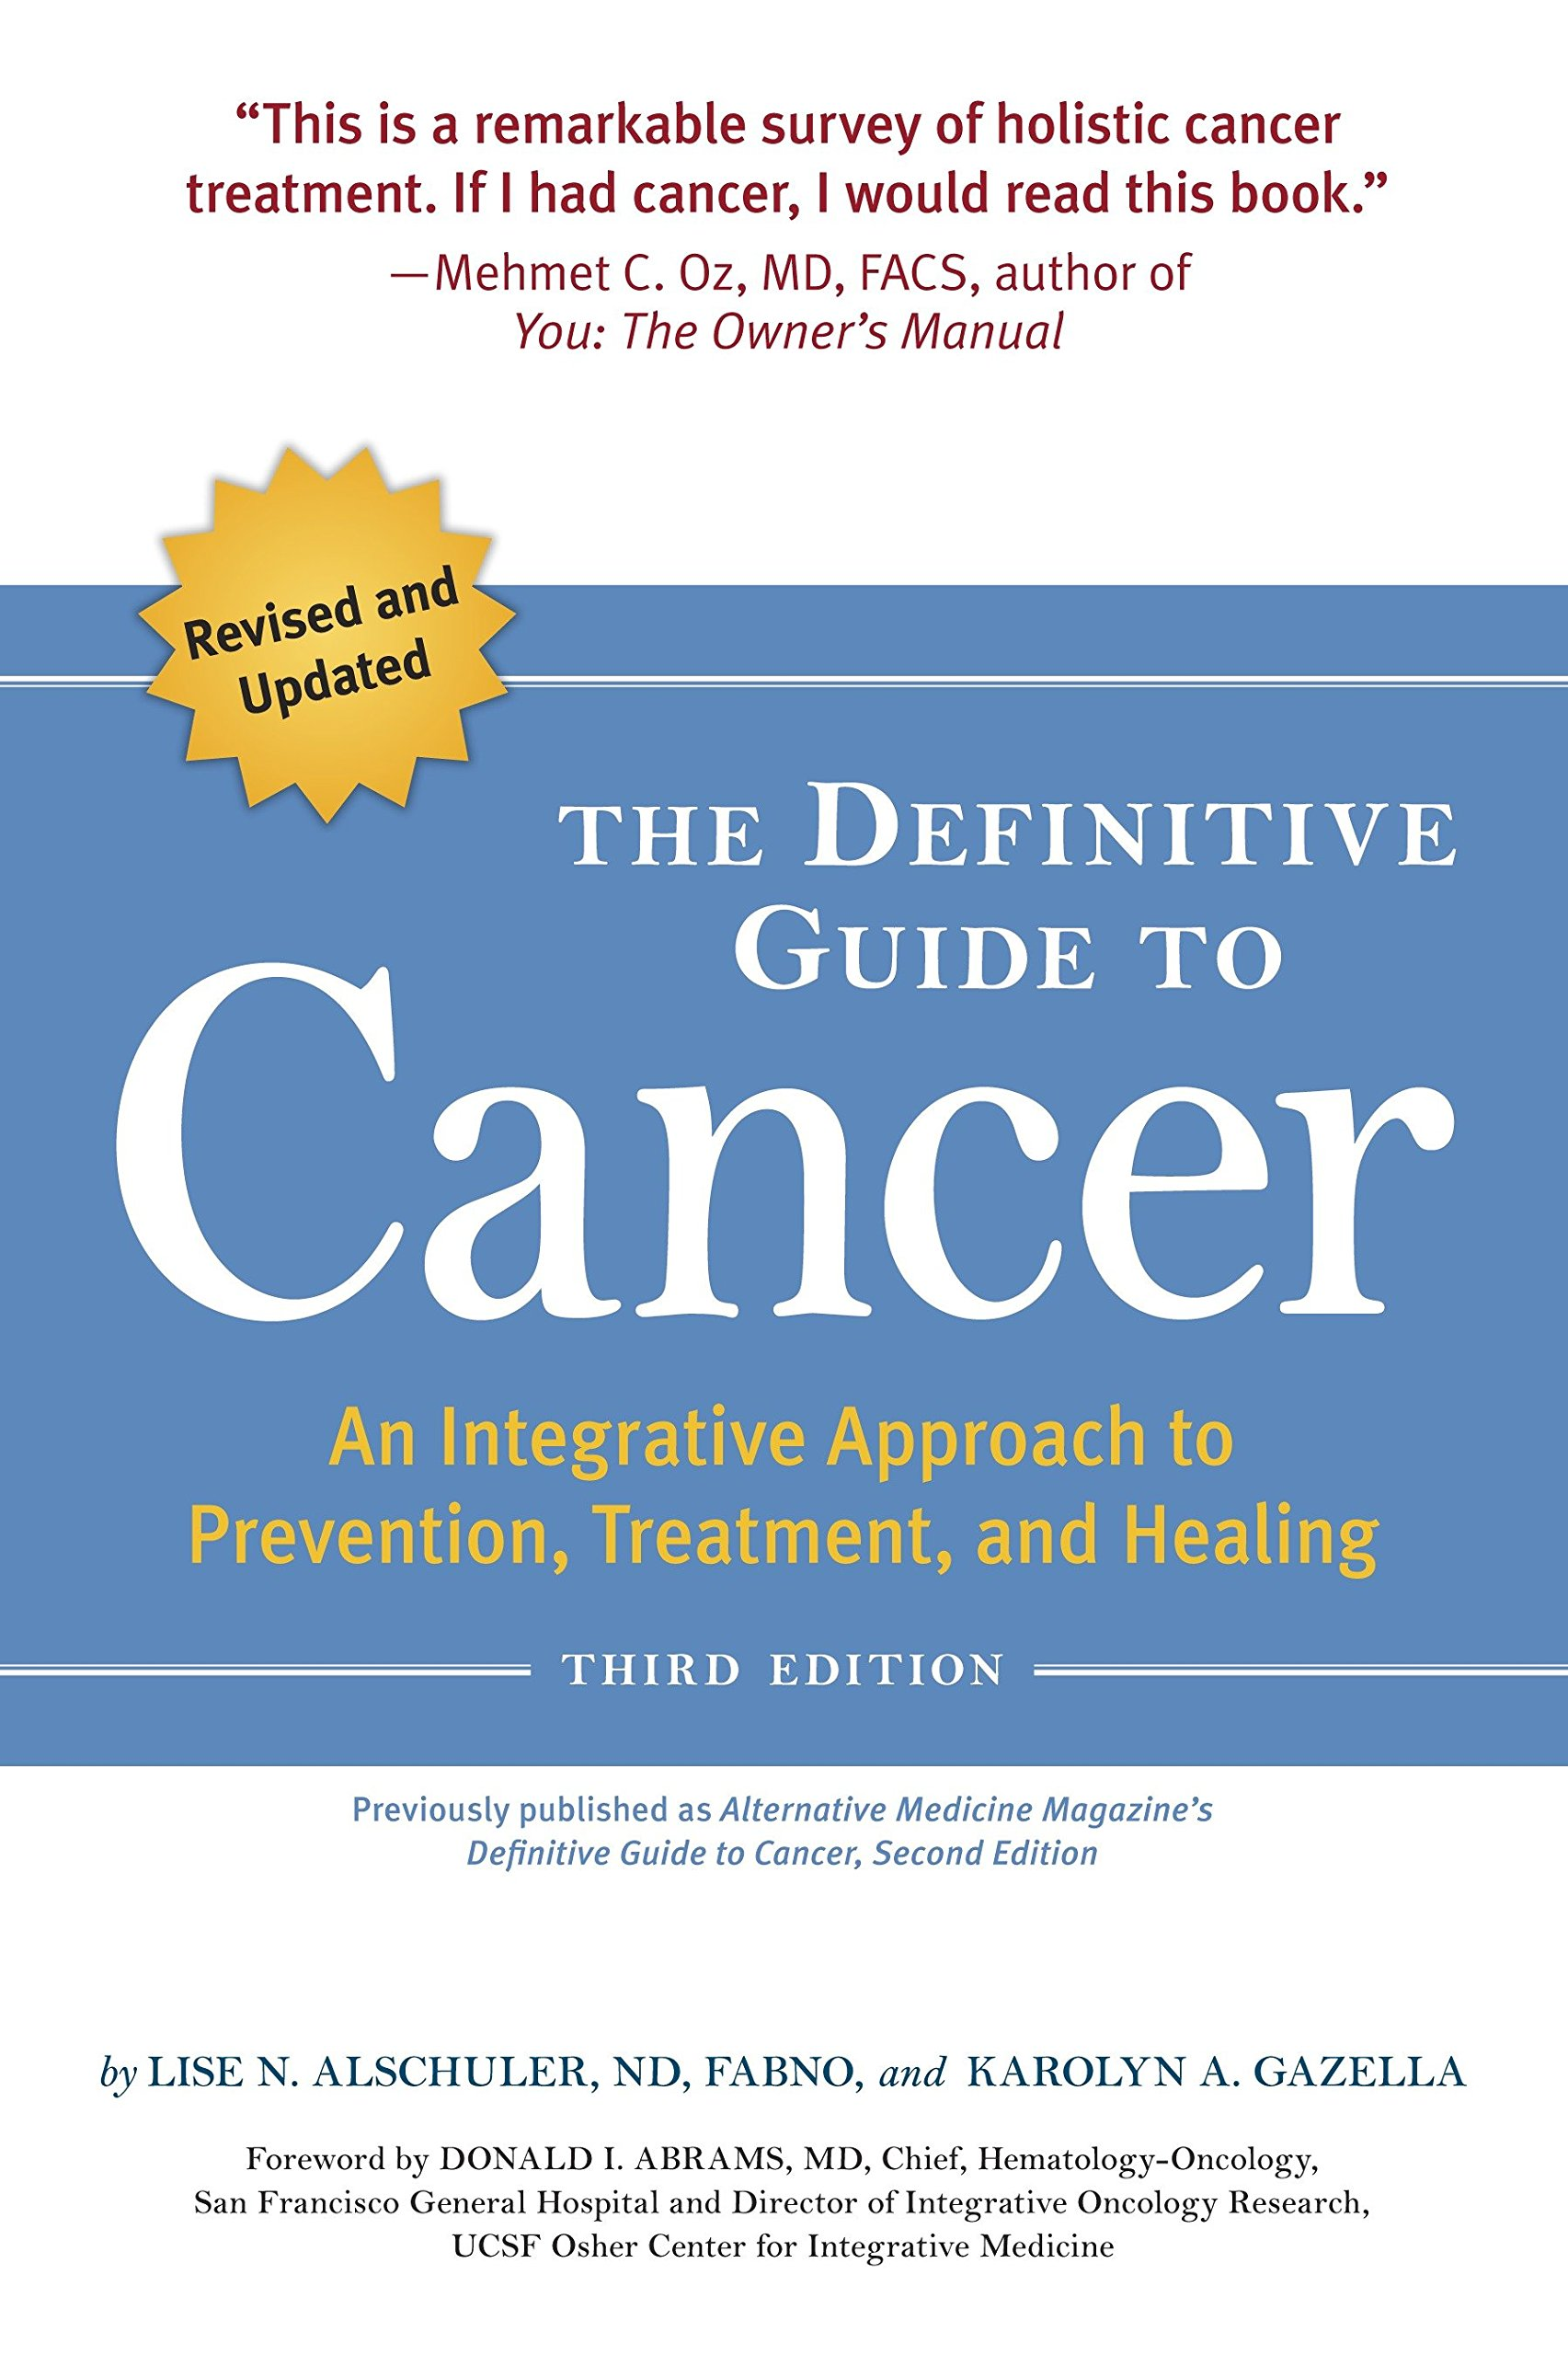 The Definitive Guide to Cancer, 3rd Edition: An Integrative Approach to Prevention, Treatment, and Healing (Alternative Medicine Guides) by Celestial Arts